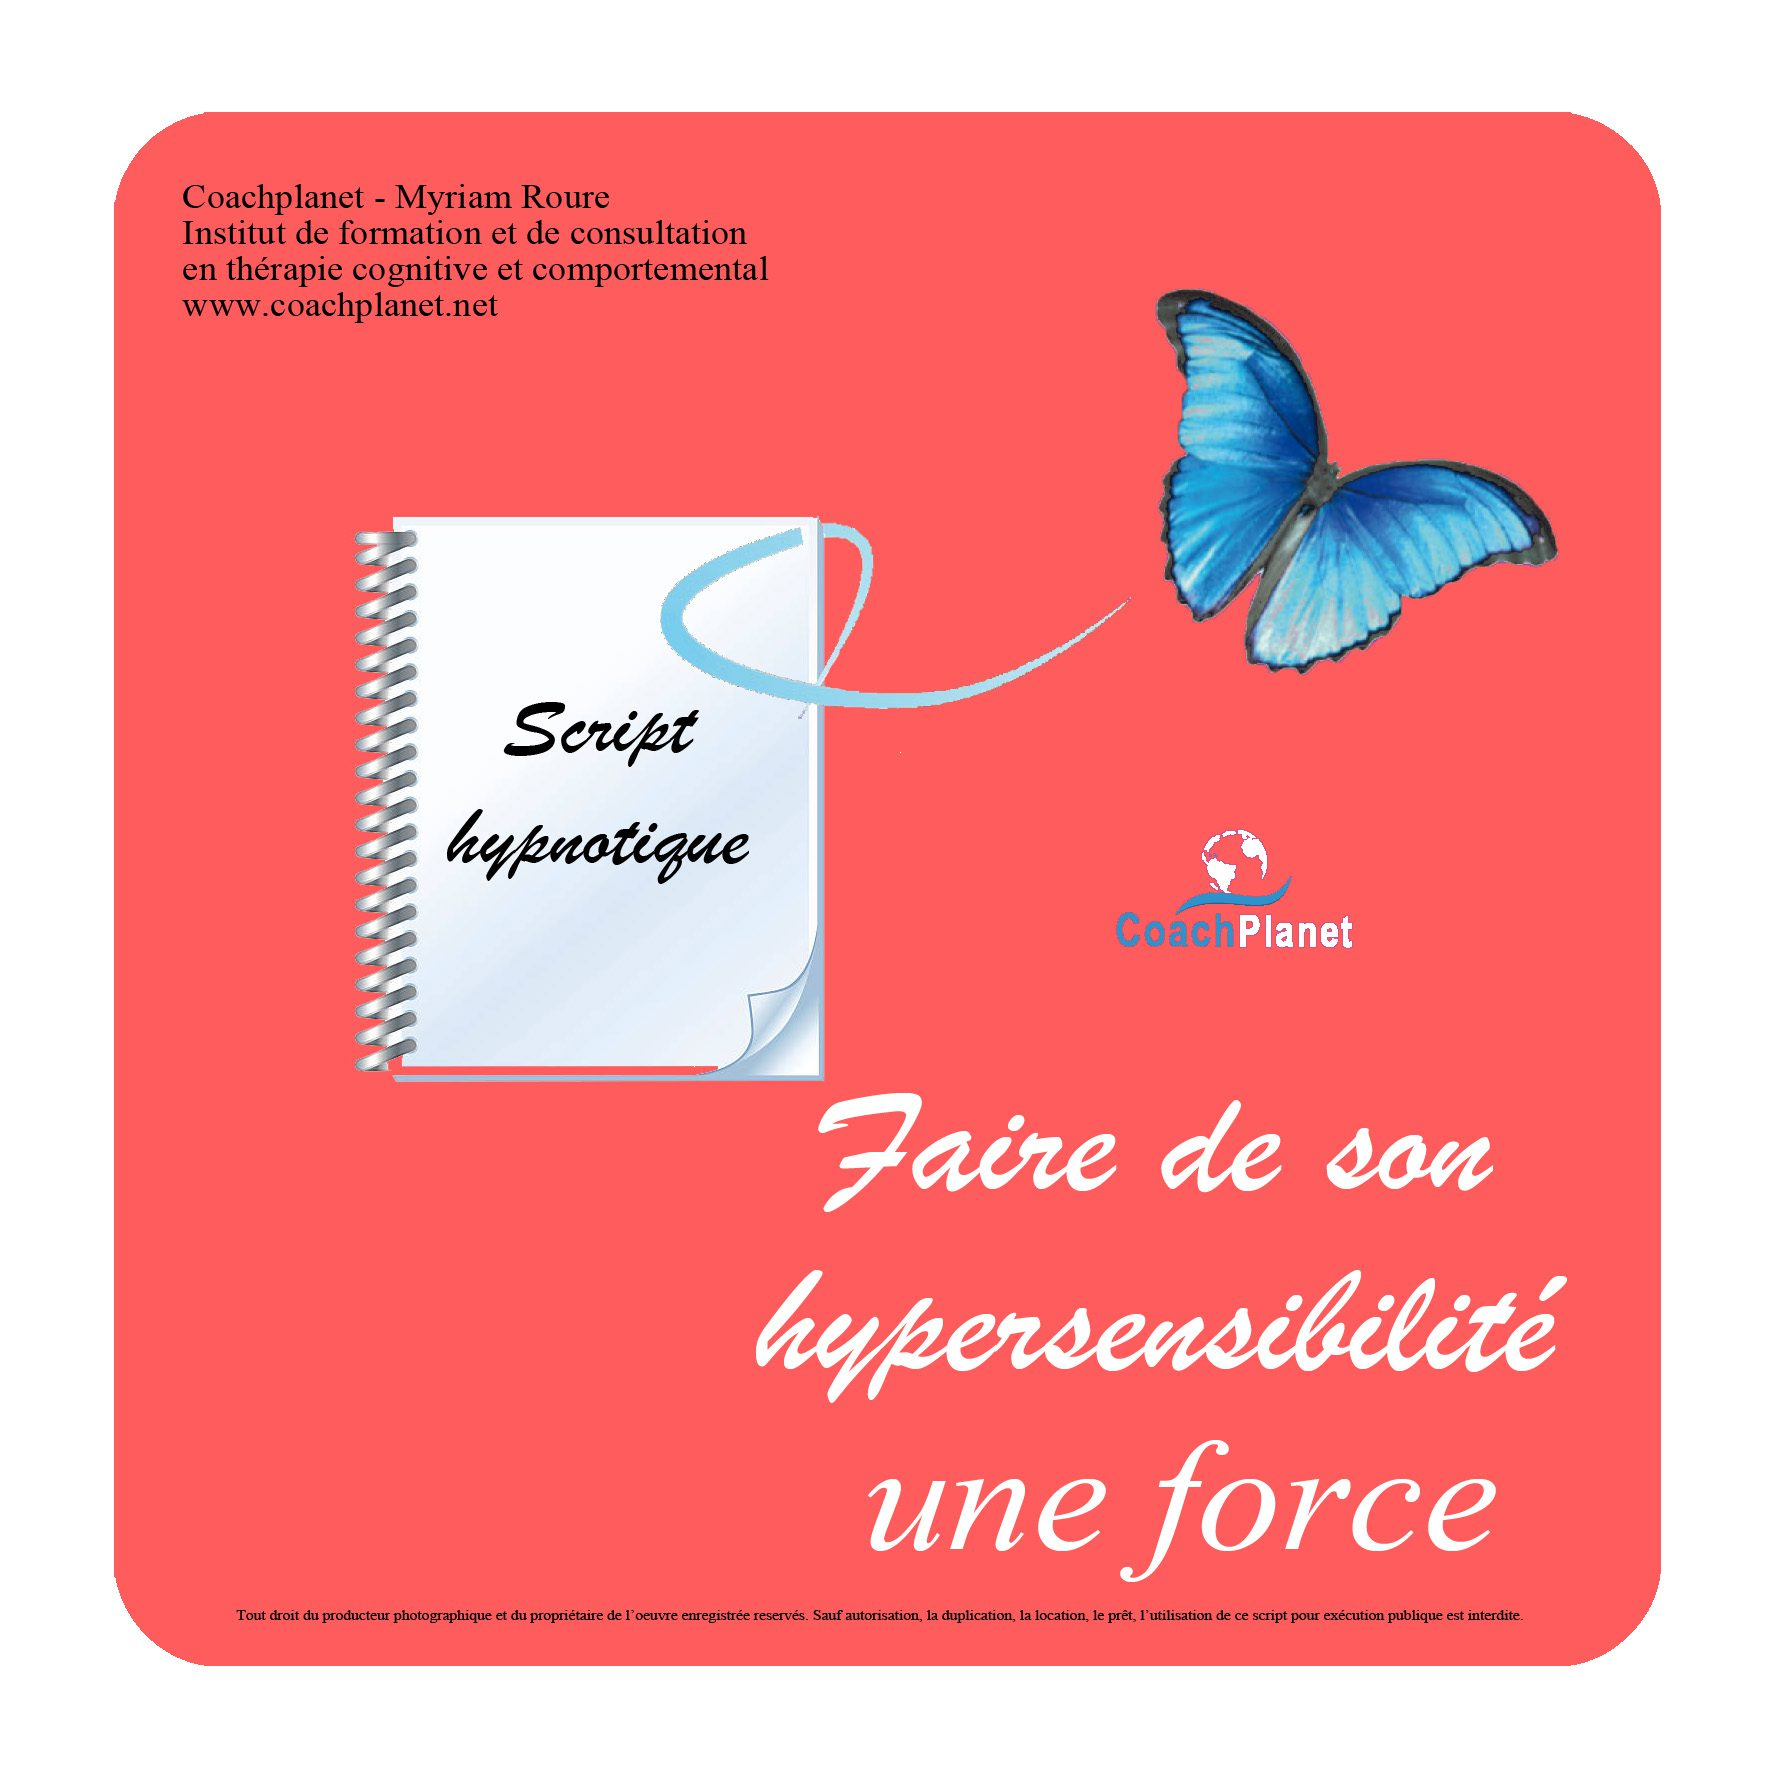 faire-de-son-hypersenbilite-une-force